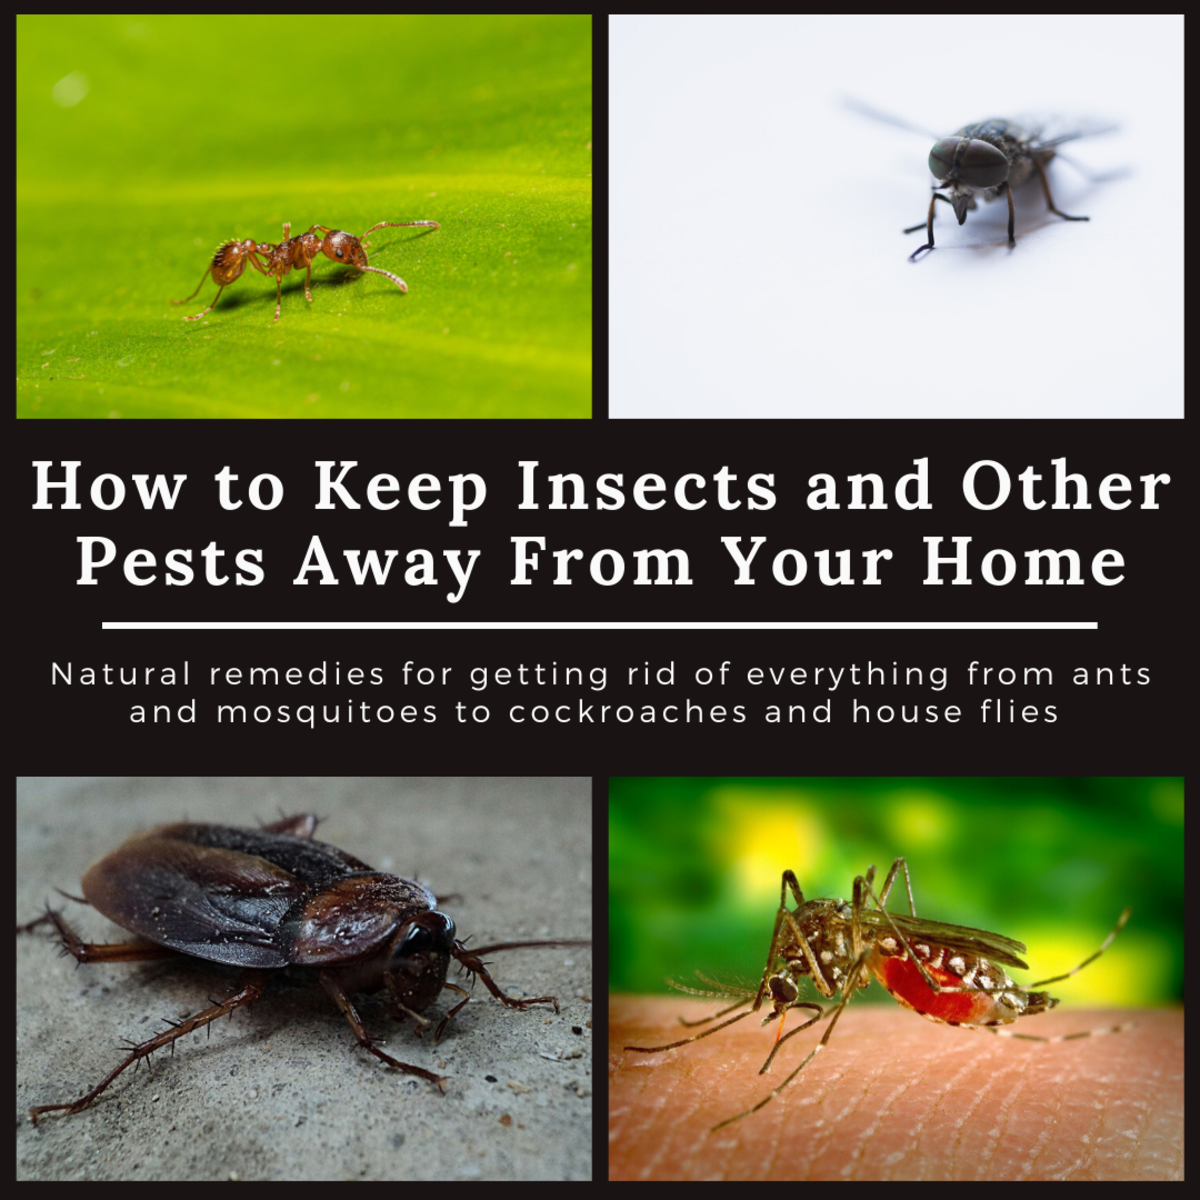 Home Remedies to Keep Cockroaches, Lizards, Ants, Mosquitoes, Bed Bugs, and Flies Out of Your House